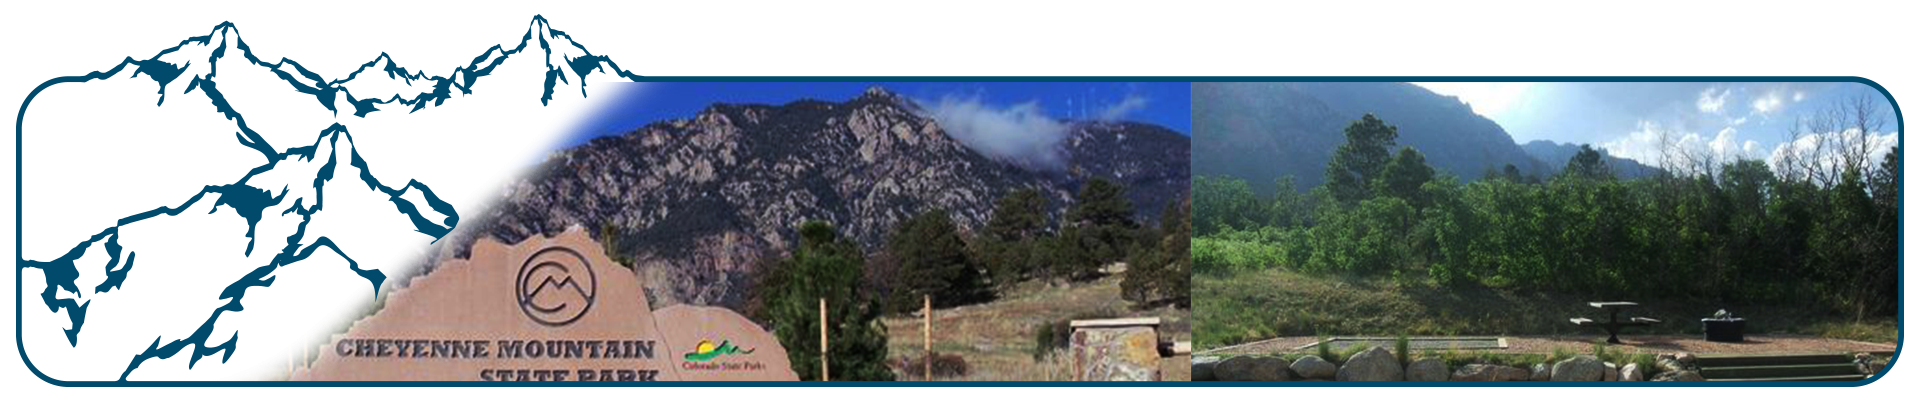 Enjoy your stay at Cheyenne Mountain State Park.